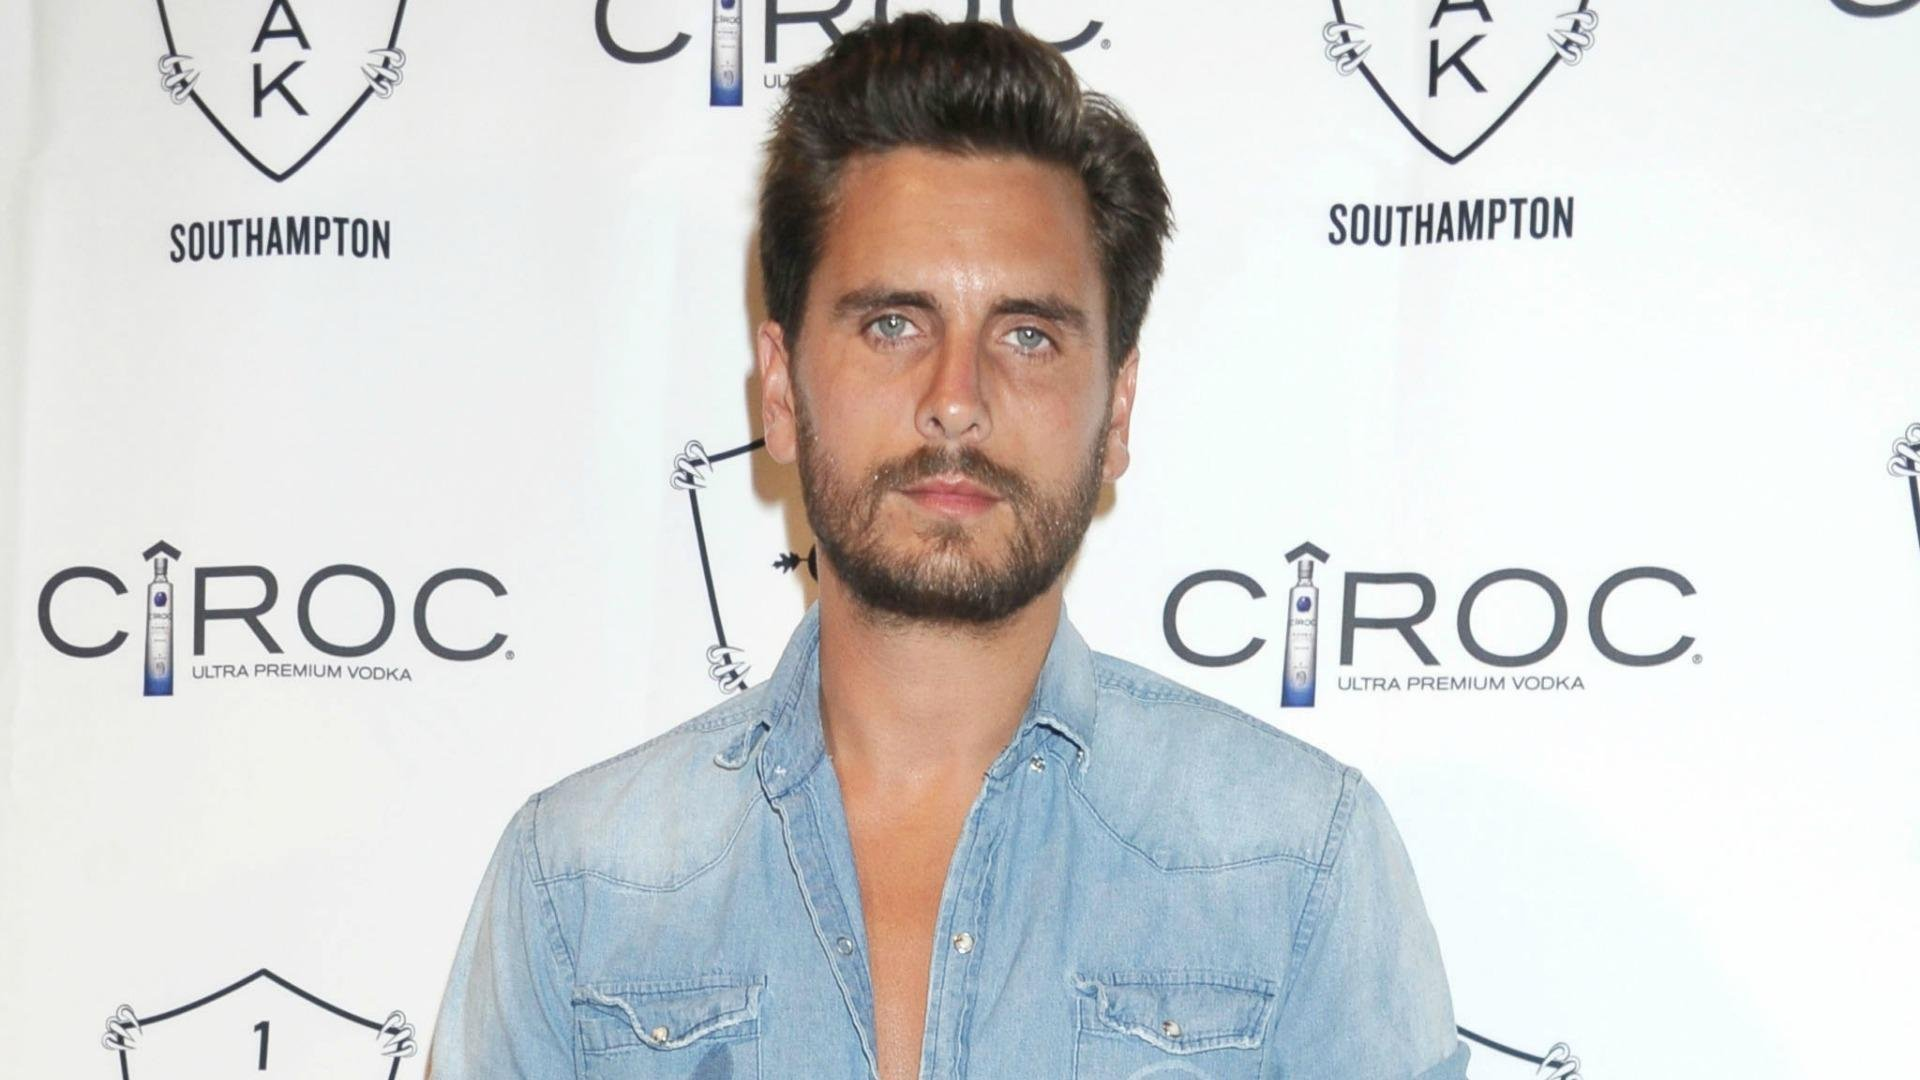 Scott Disick's wild ways are in the past after his trip to the emergency room